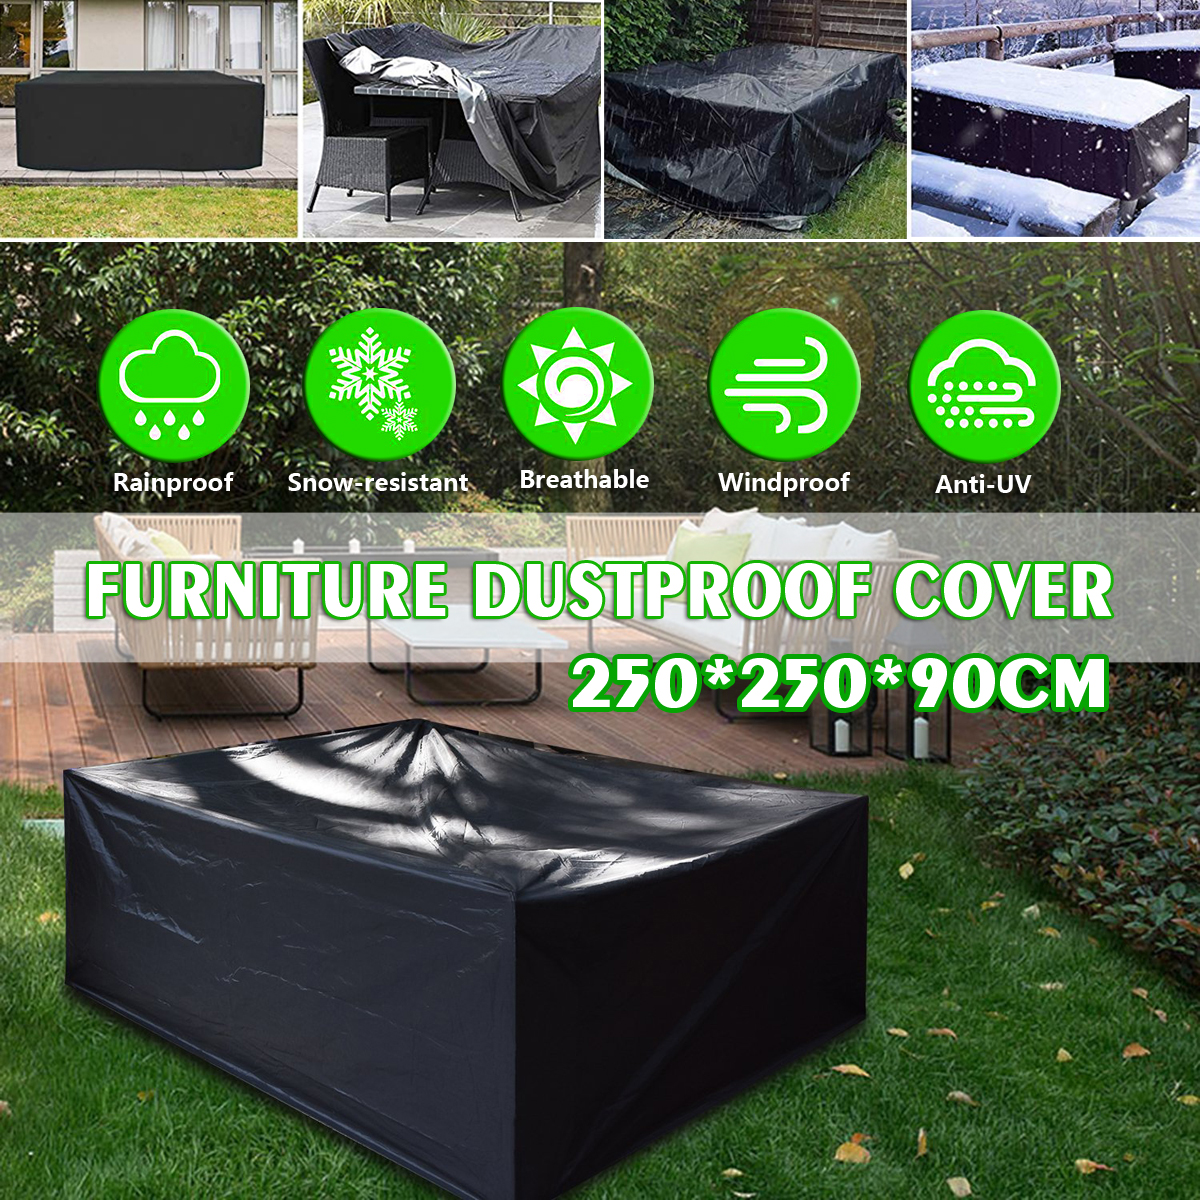 outdoor sectional sofa patio furniture cover 210d oxford cloth water resistant outdoor furniture cover fits rectangular oval patio tables 98 l x